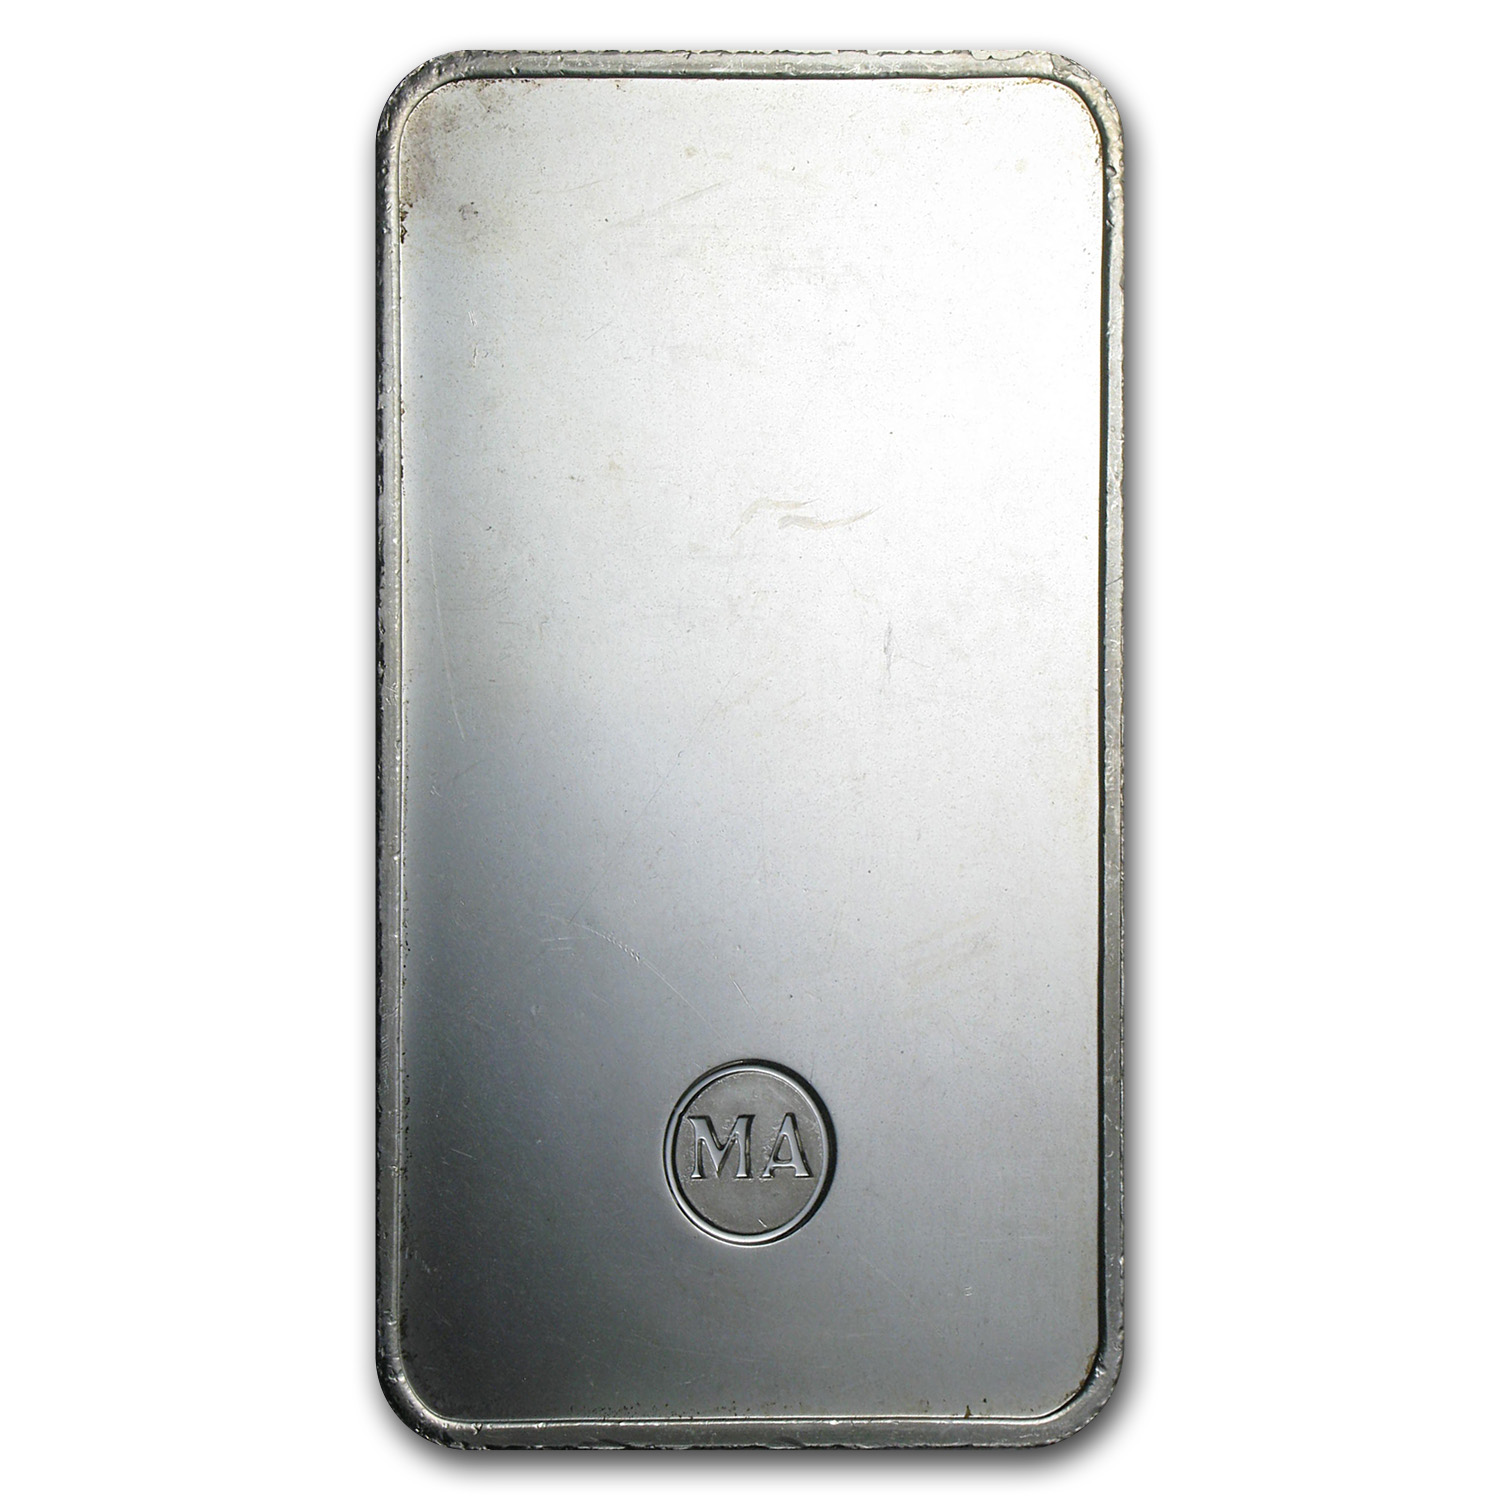 10 oz Silver Bars - Morgan (Metal Arts Co.)